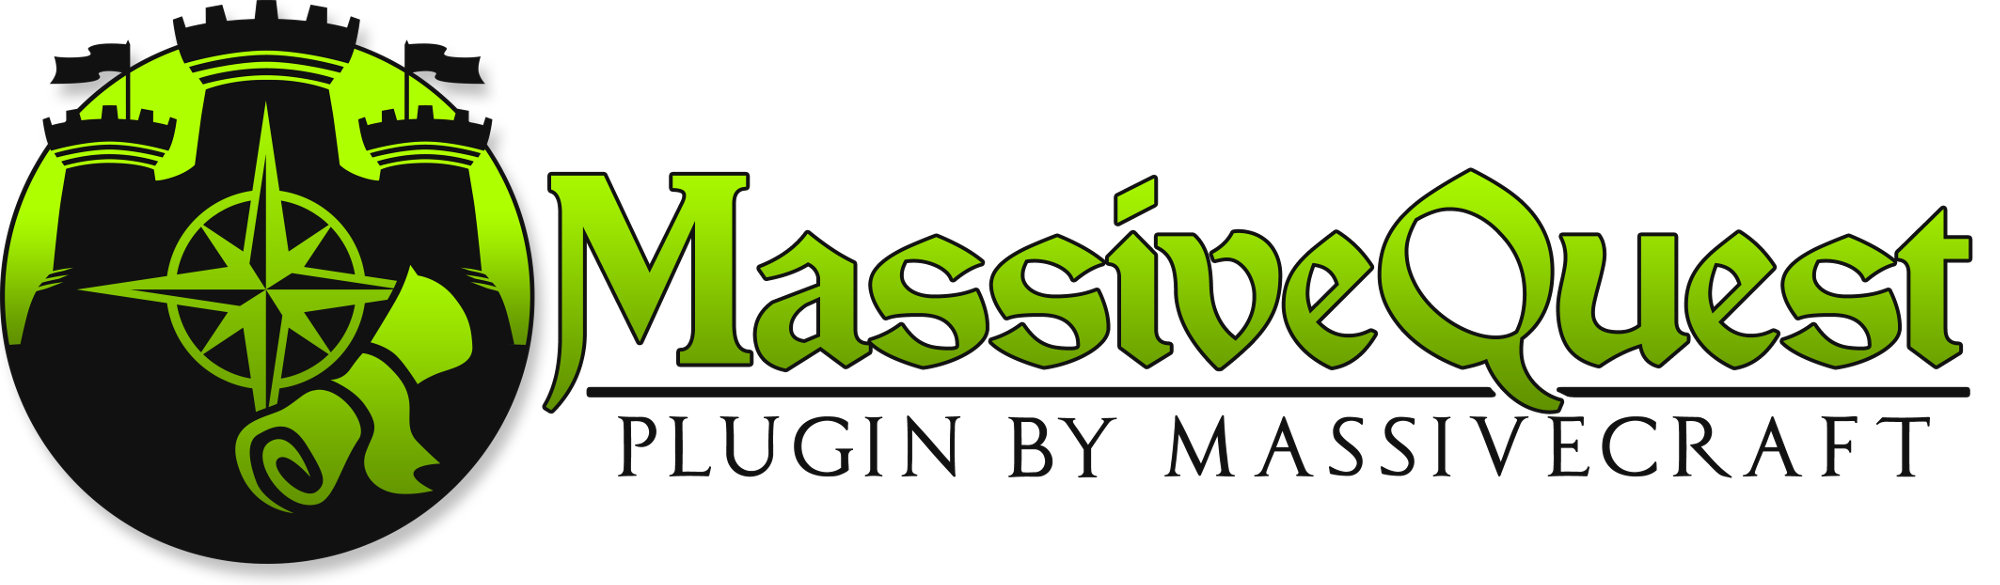 massivecraft-logotype-plugin-massivequest-2000